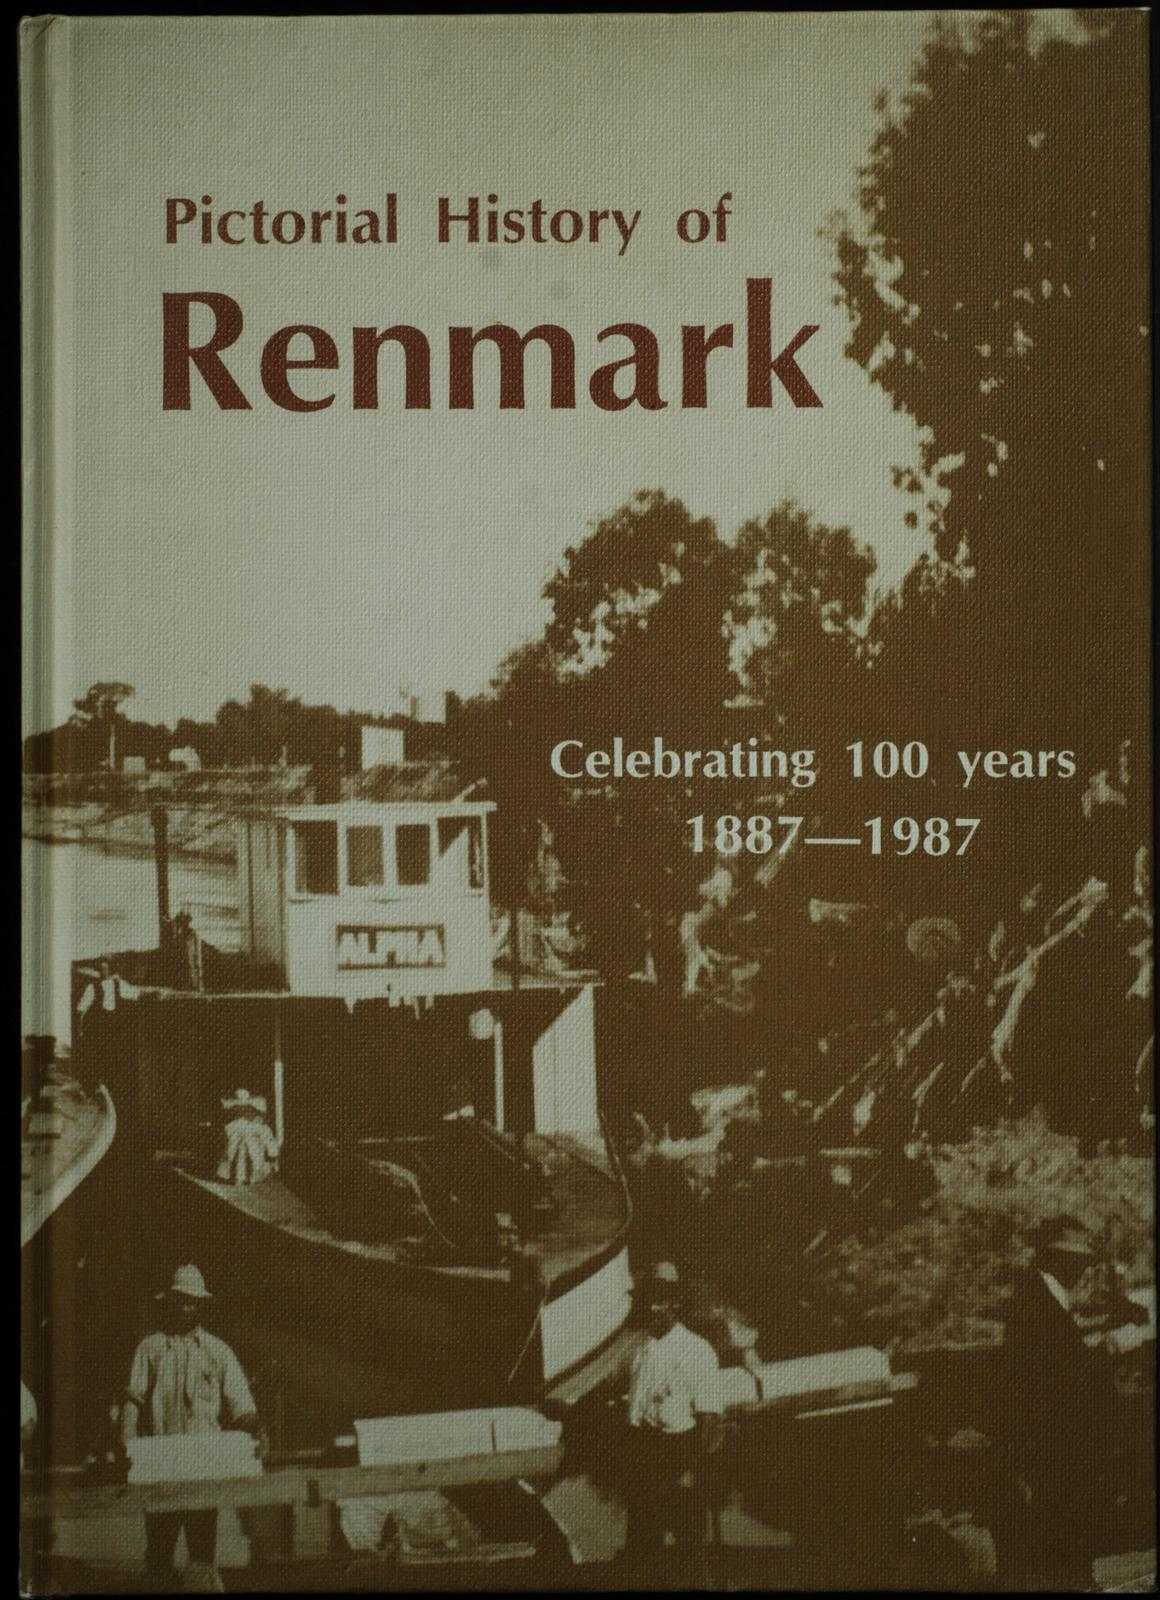 Pictorial_History_Of_Renmark_Story_E;Bennett_H;McIntosh_R;McIntosh_B;Taylor_D;Hersey_T_[Fine]_[Hardcover]